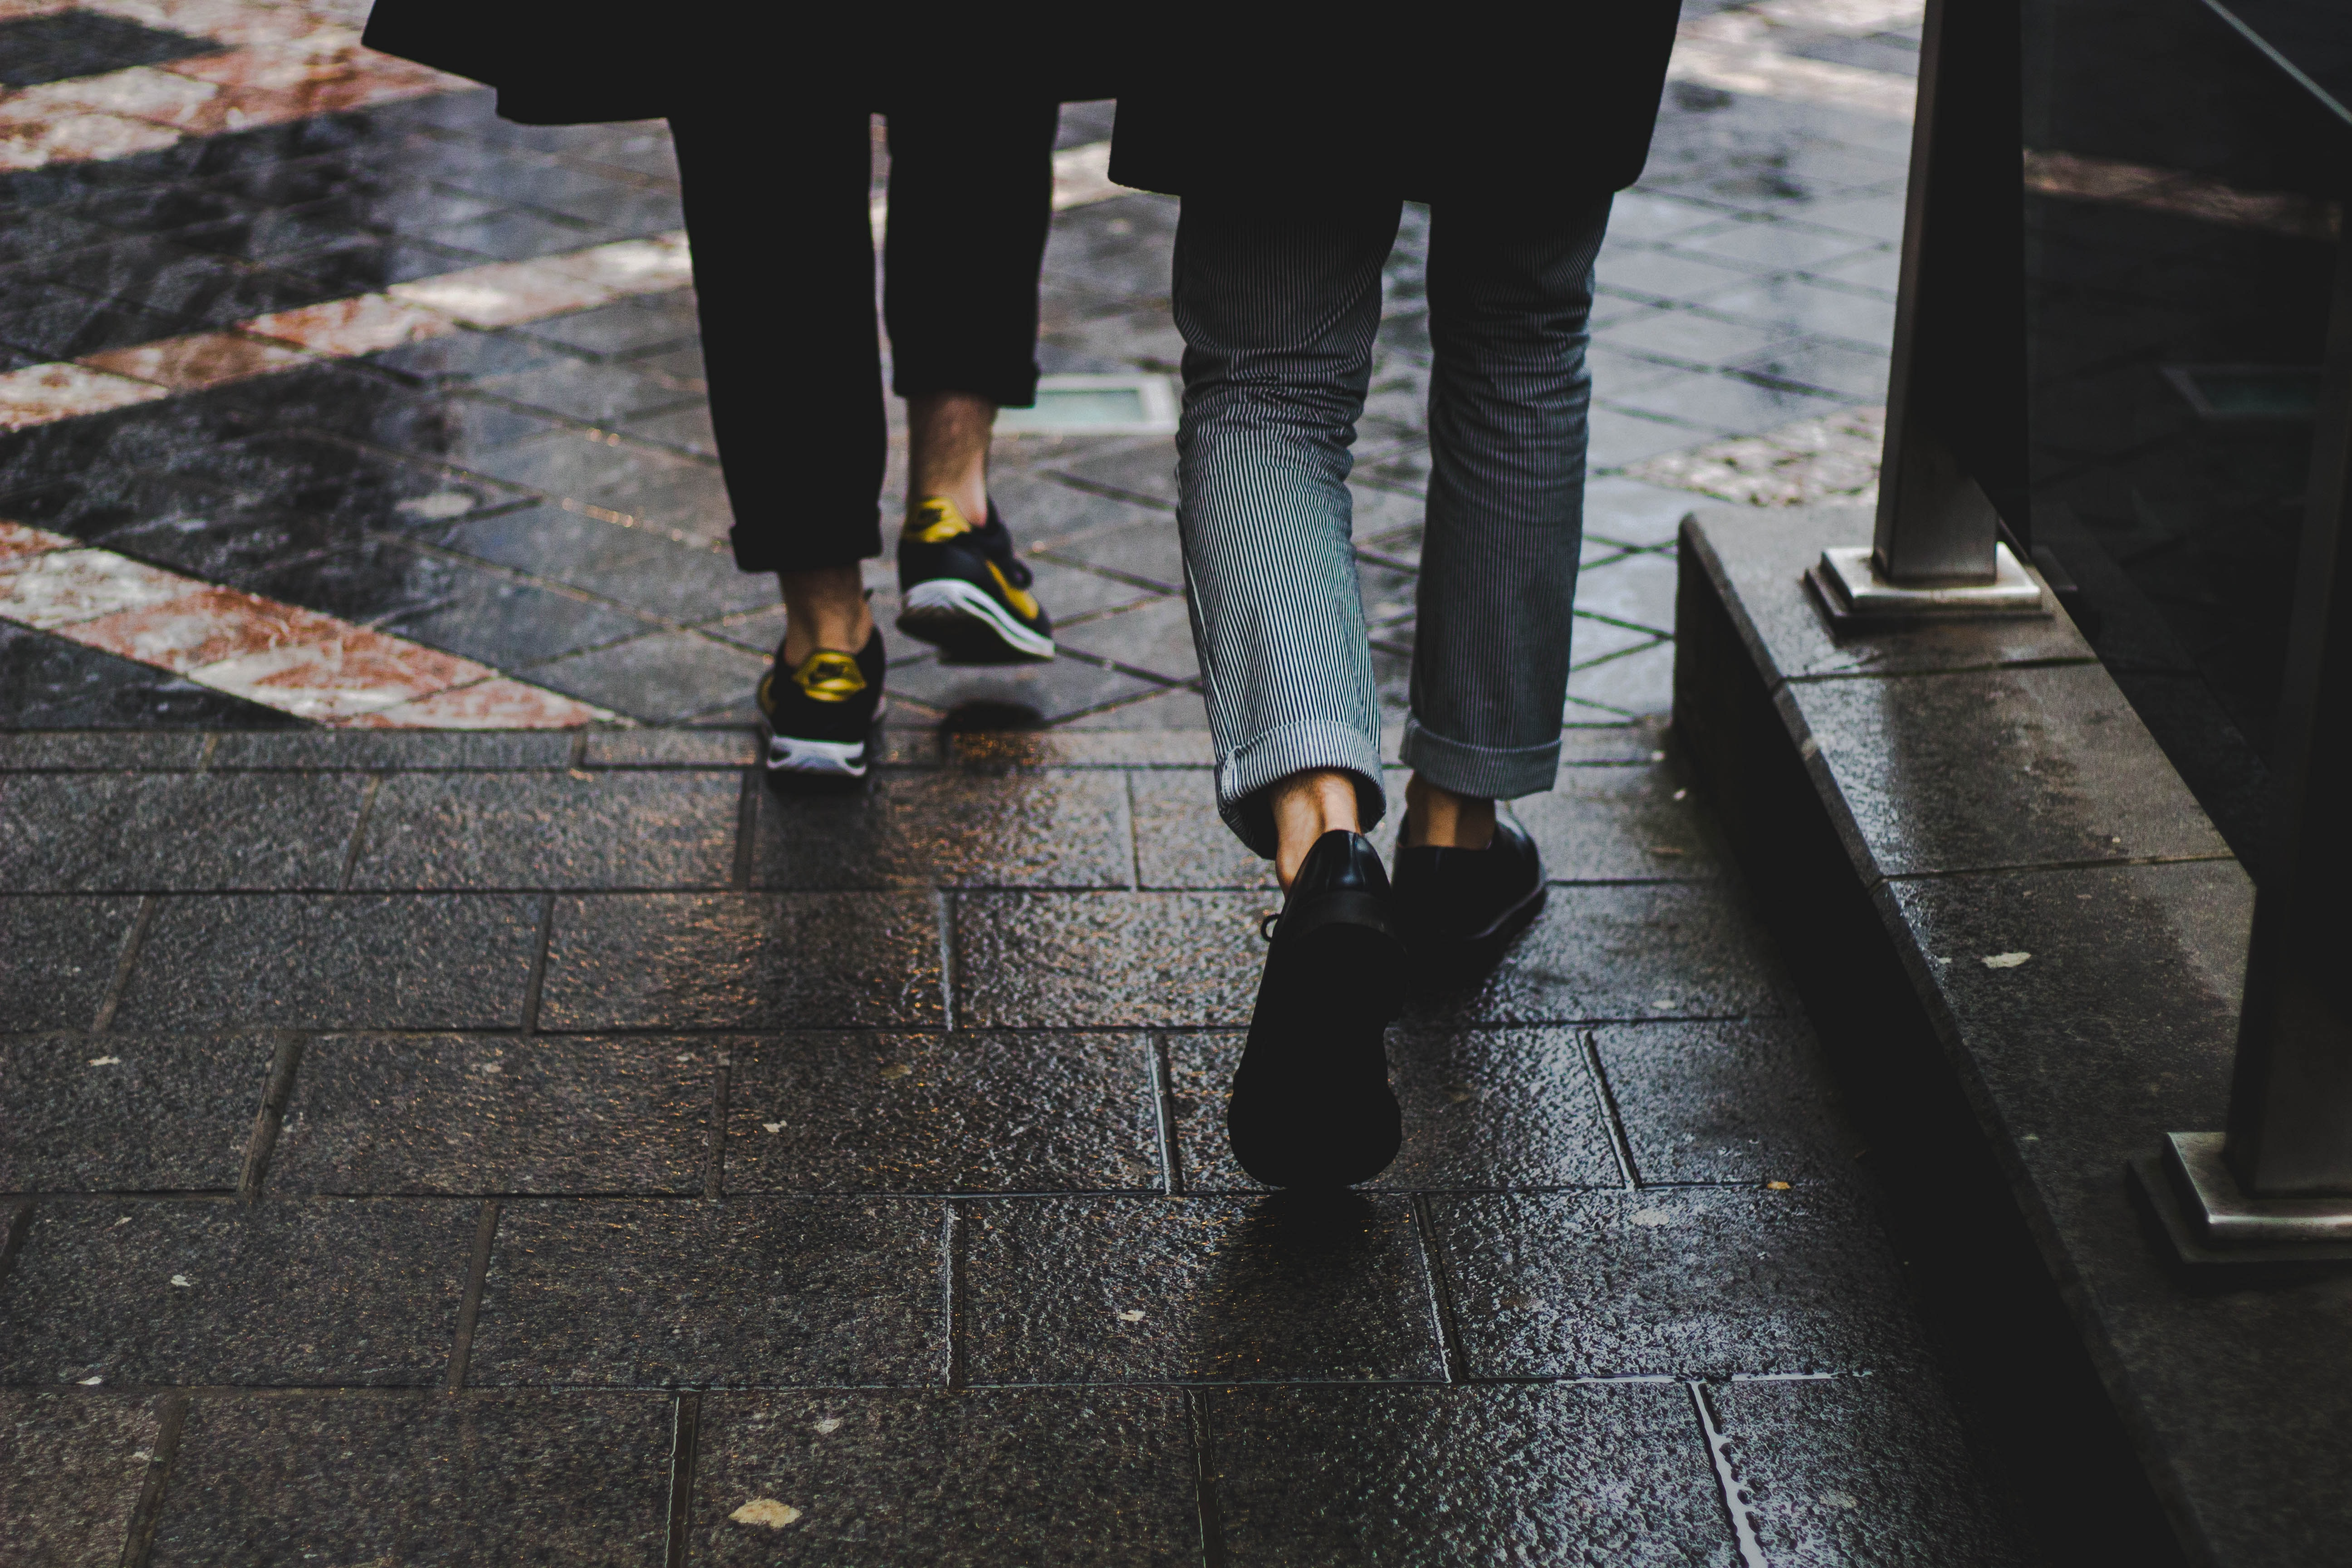 two person walking near the bench